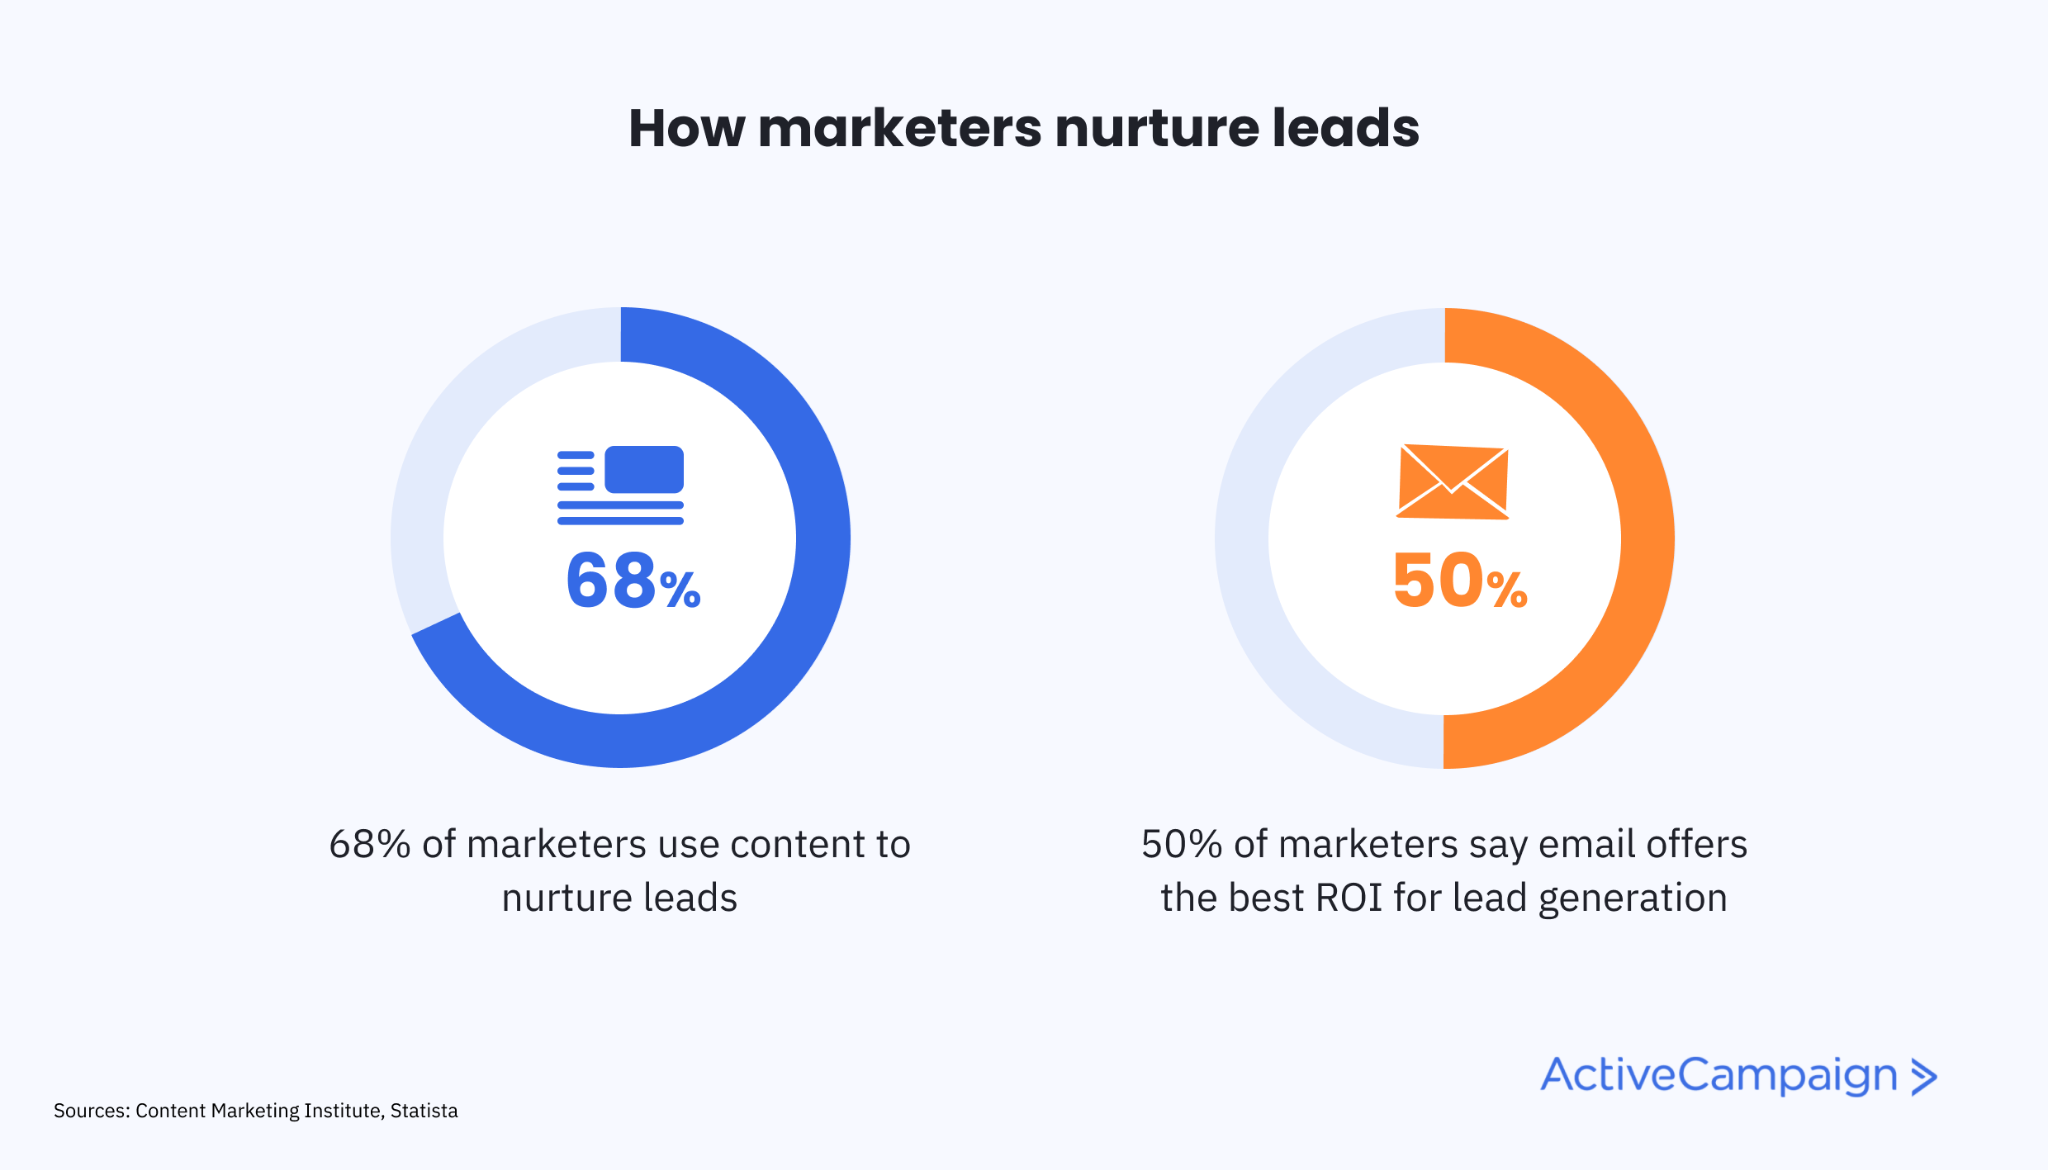 pie charts showing that 68% of marketers use content to nurture leads and 50% say email is the best channel for lead gen ROI